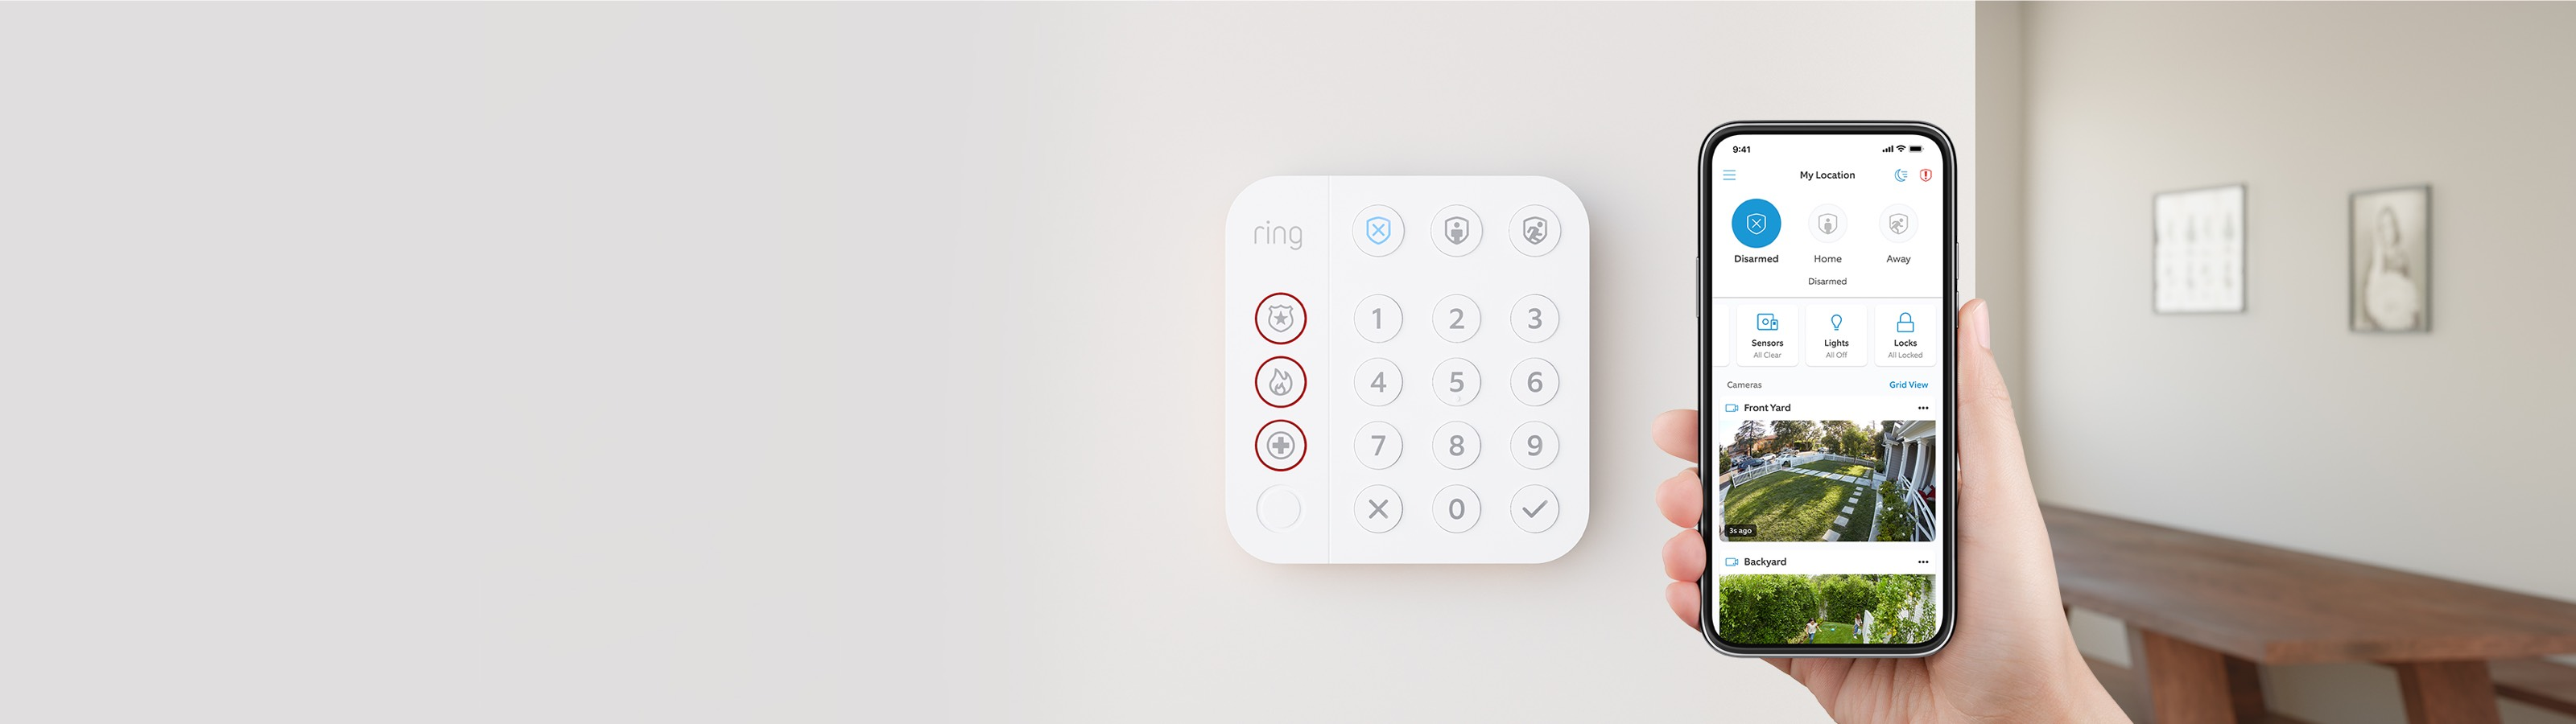 Customized Smart Home Security Alarm System Ring